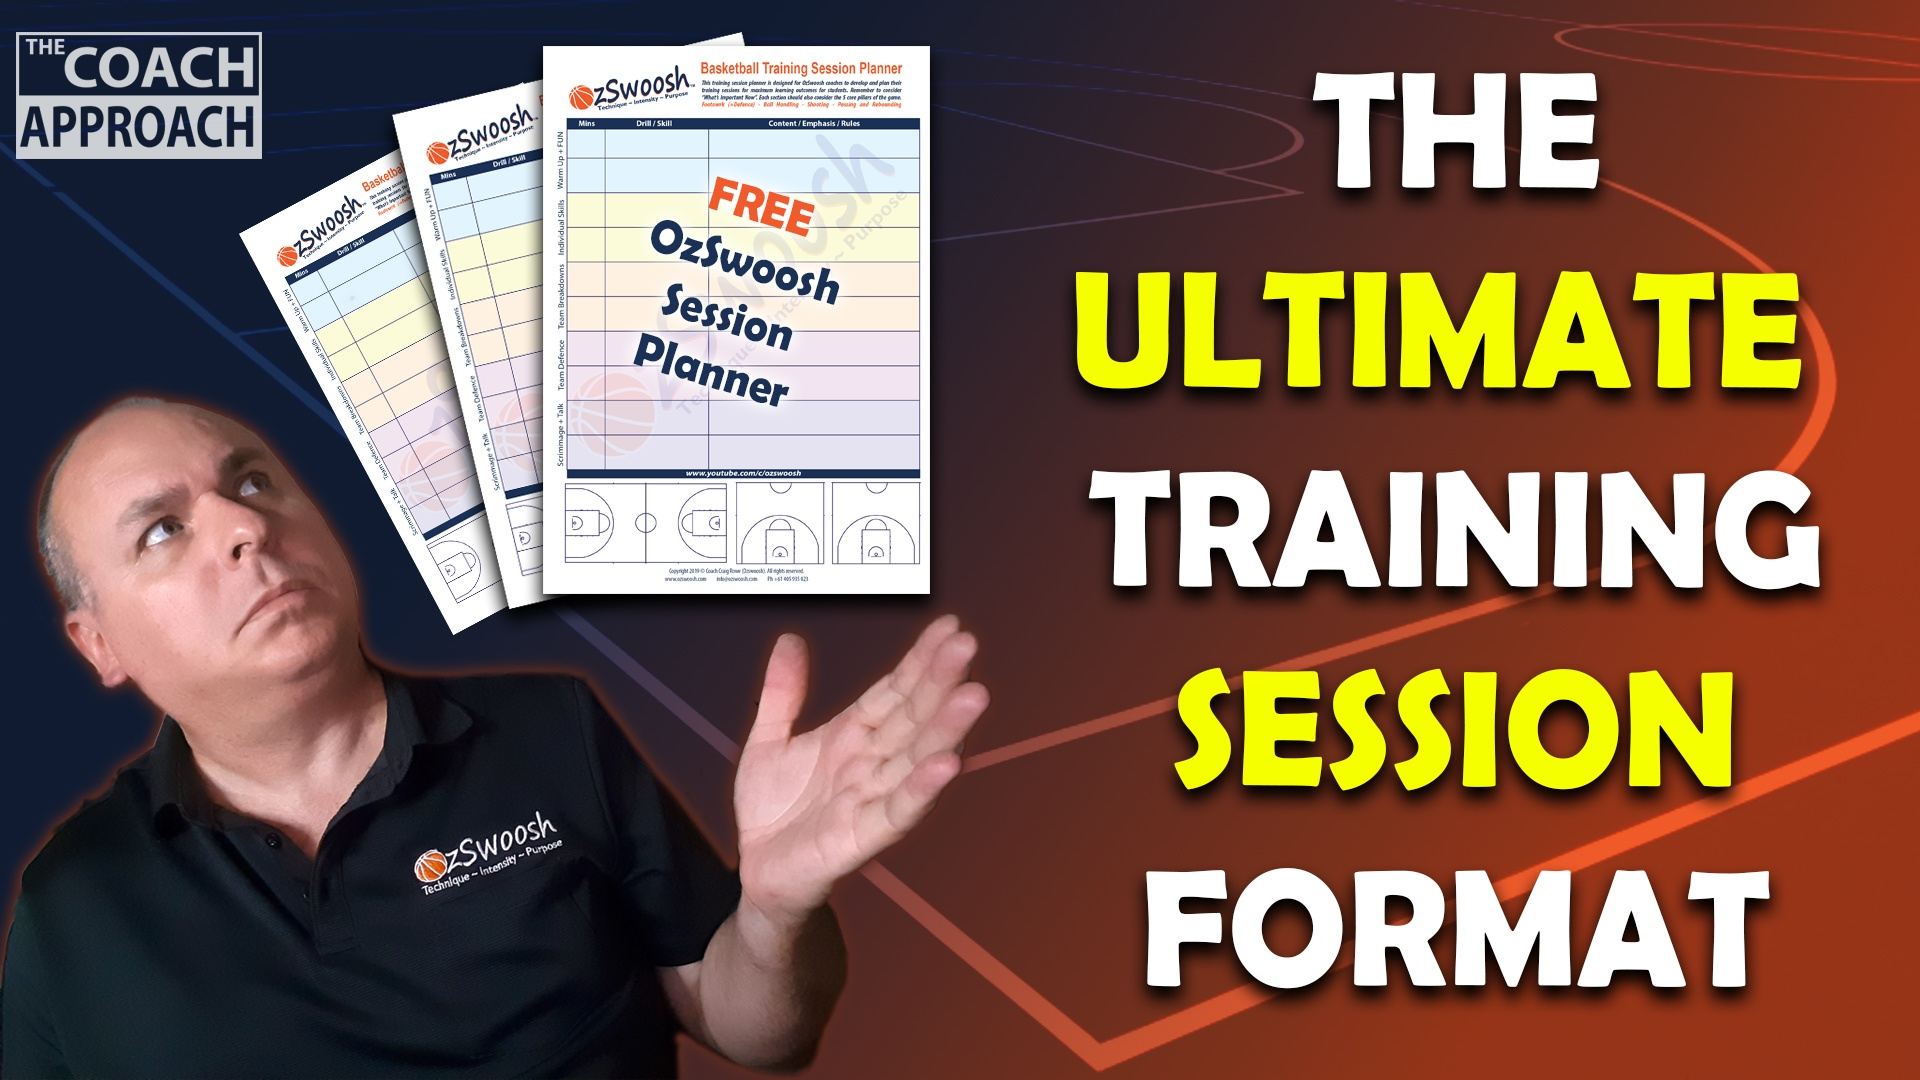 FREE Basketball training session workout planner